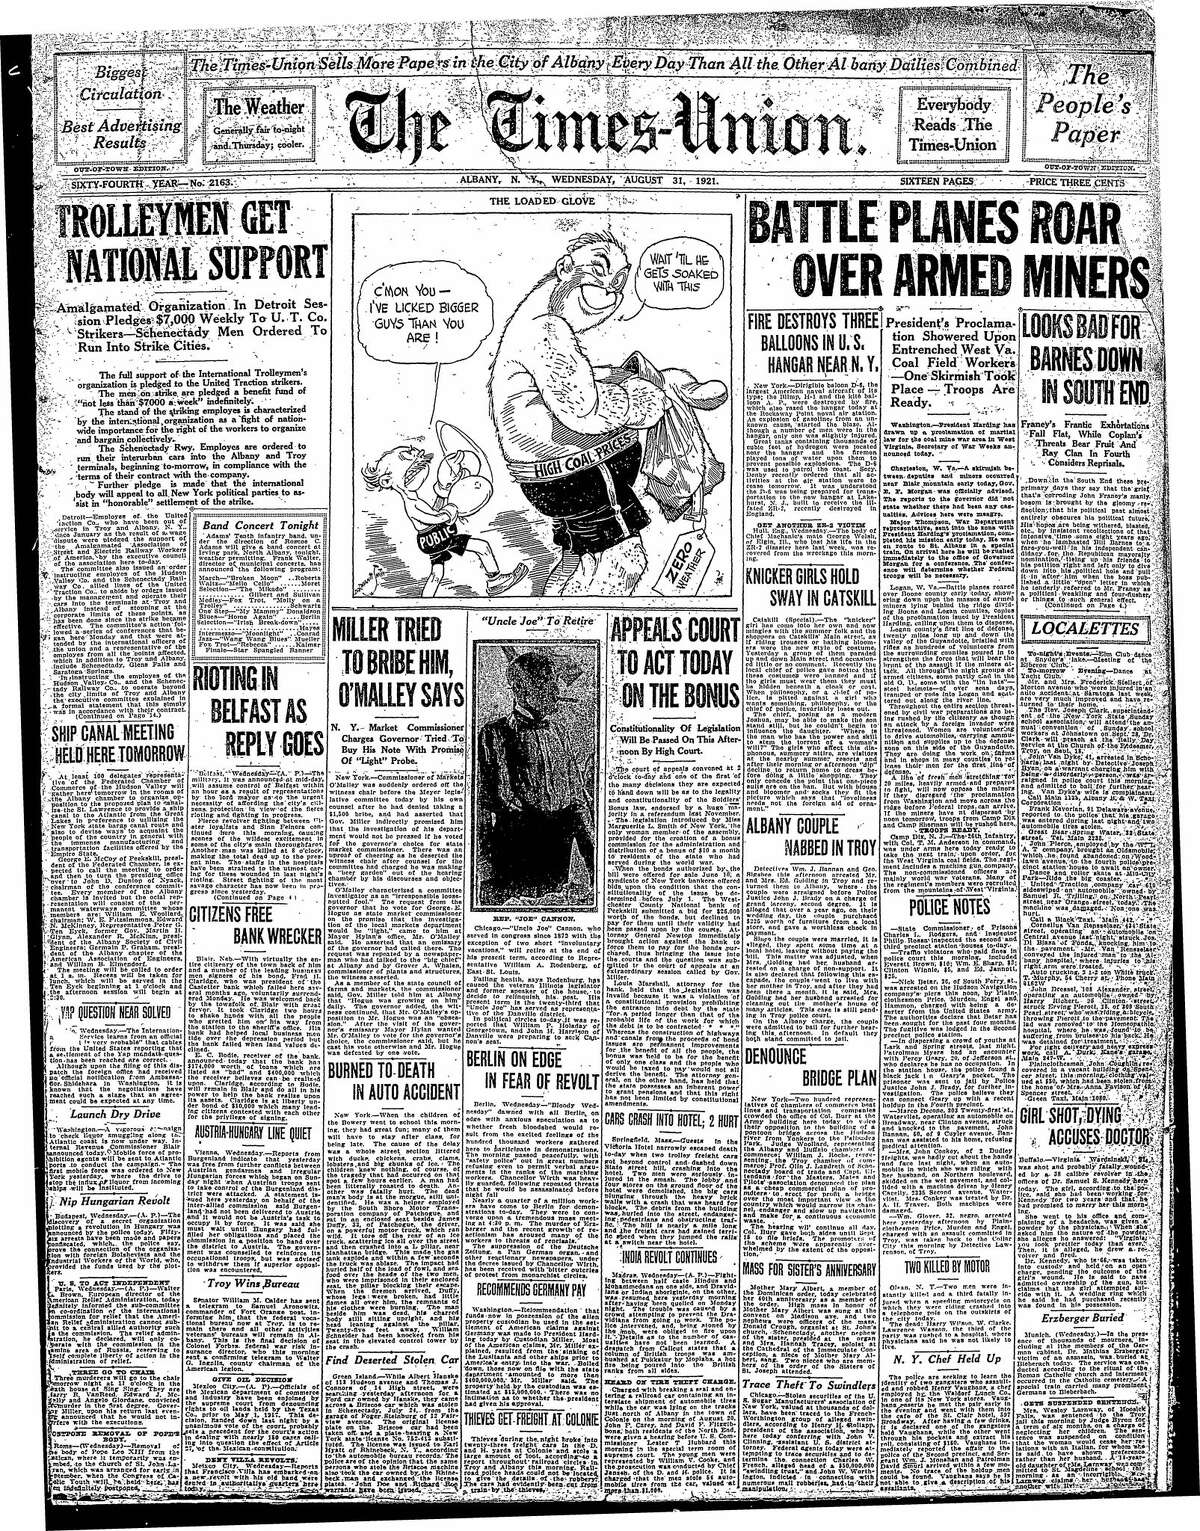 Front page of the Times Union from Aug. 31, 1921.